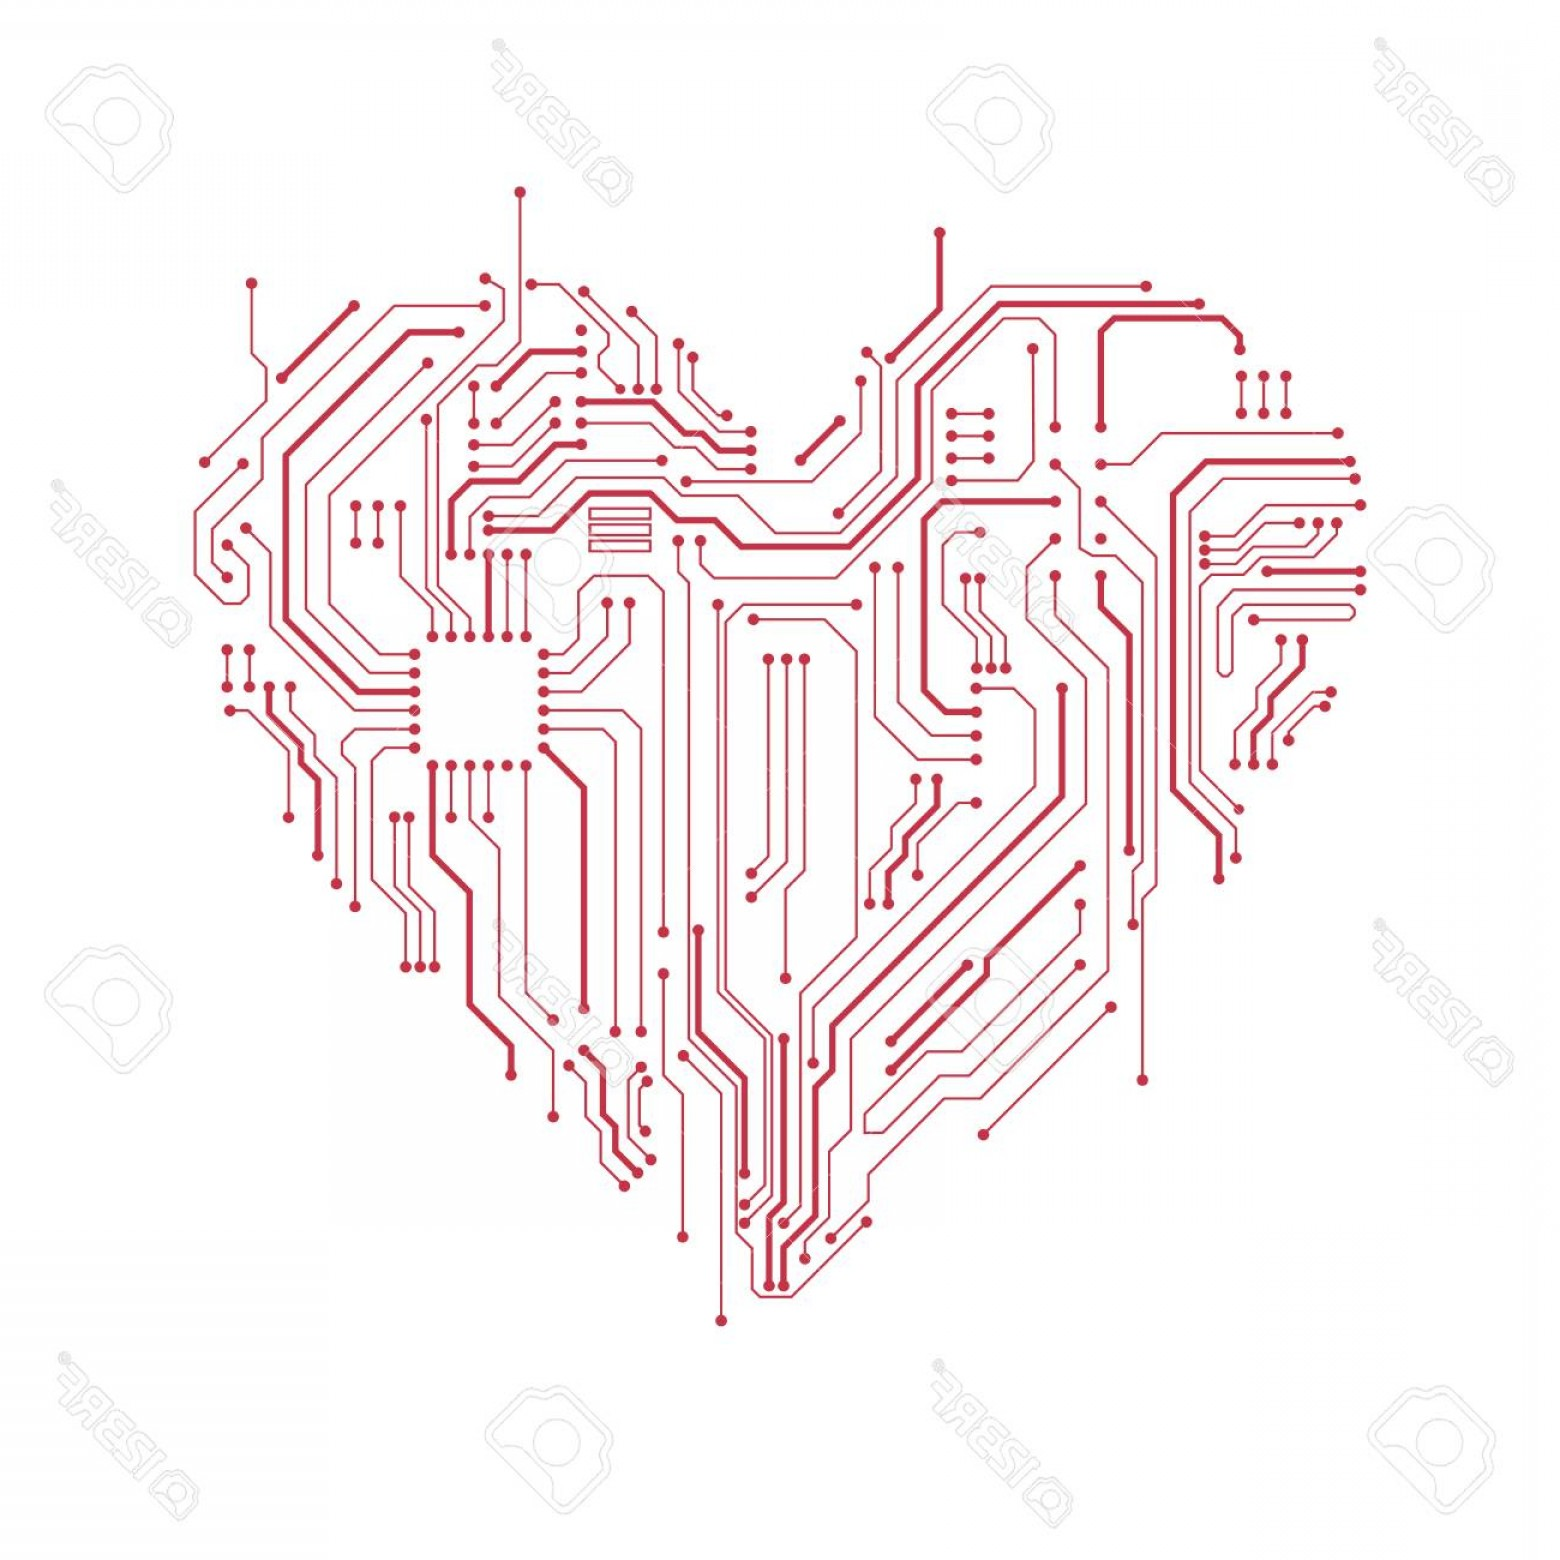 Motherboard Vector With A Heart: Photostock Vector Circuit Board Heart Symbol Valentine S Day Vector Card Computer Heart With Motherboard Elements